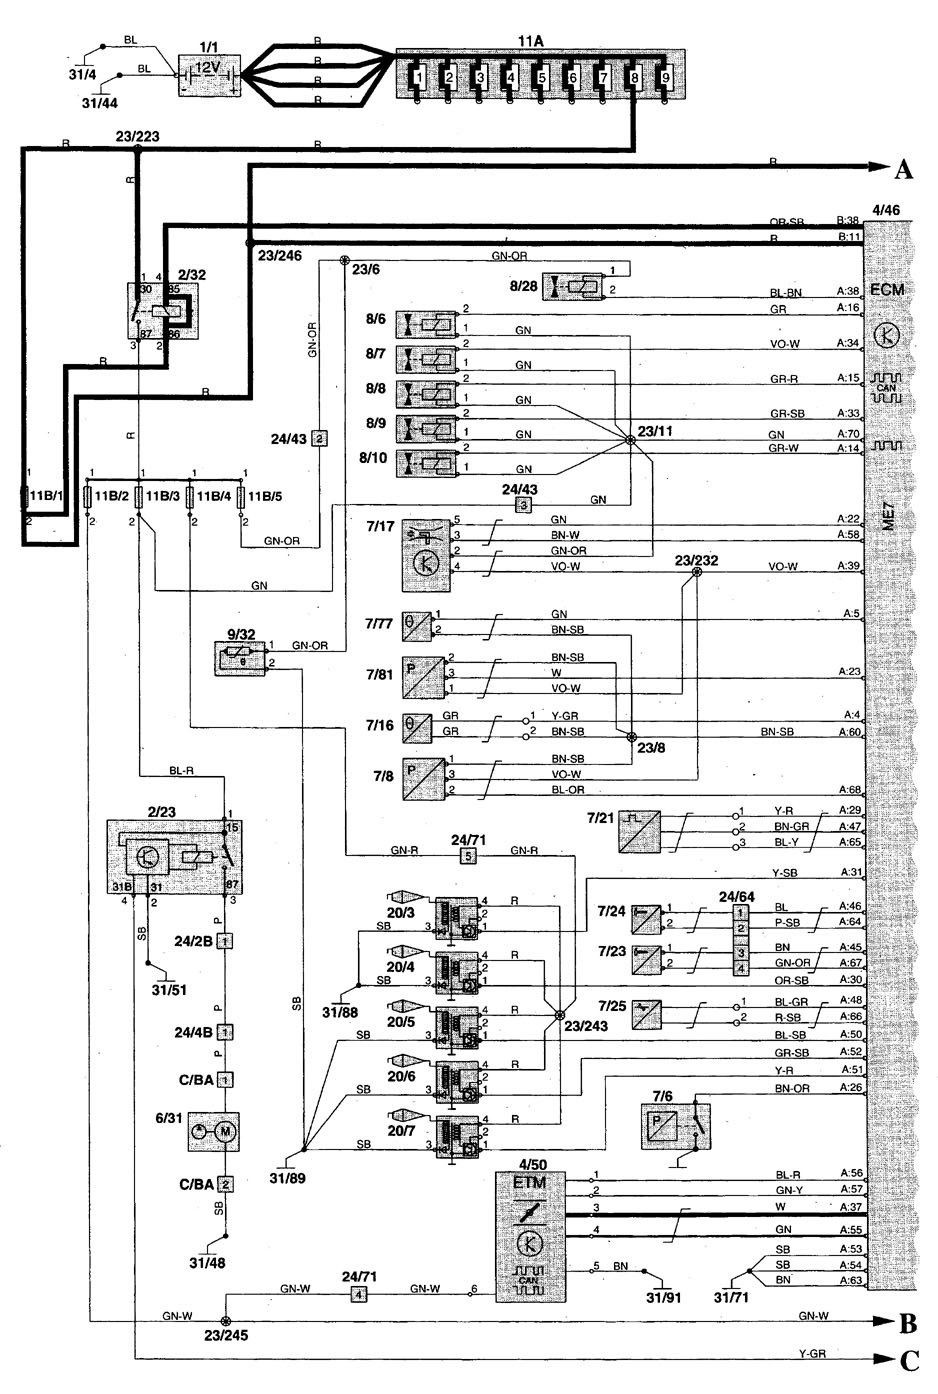 Wiring Diagram For Extra Fuel Pump Great Design Of Gm Relay Volvo C70 1999 2004 Diagrams Electric Flow Chevy